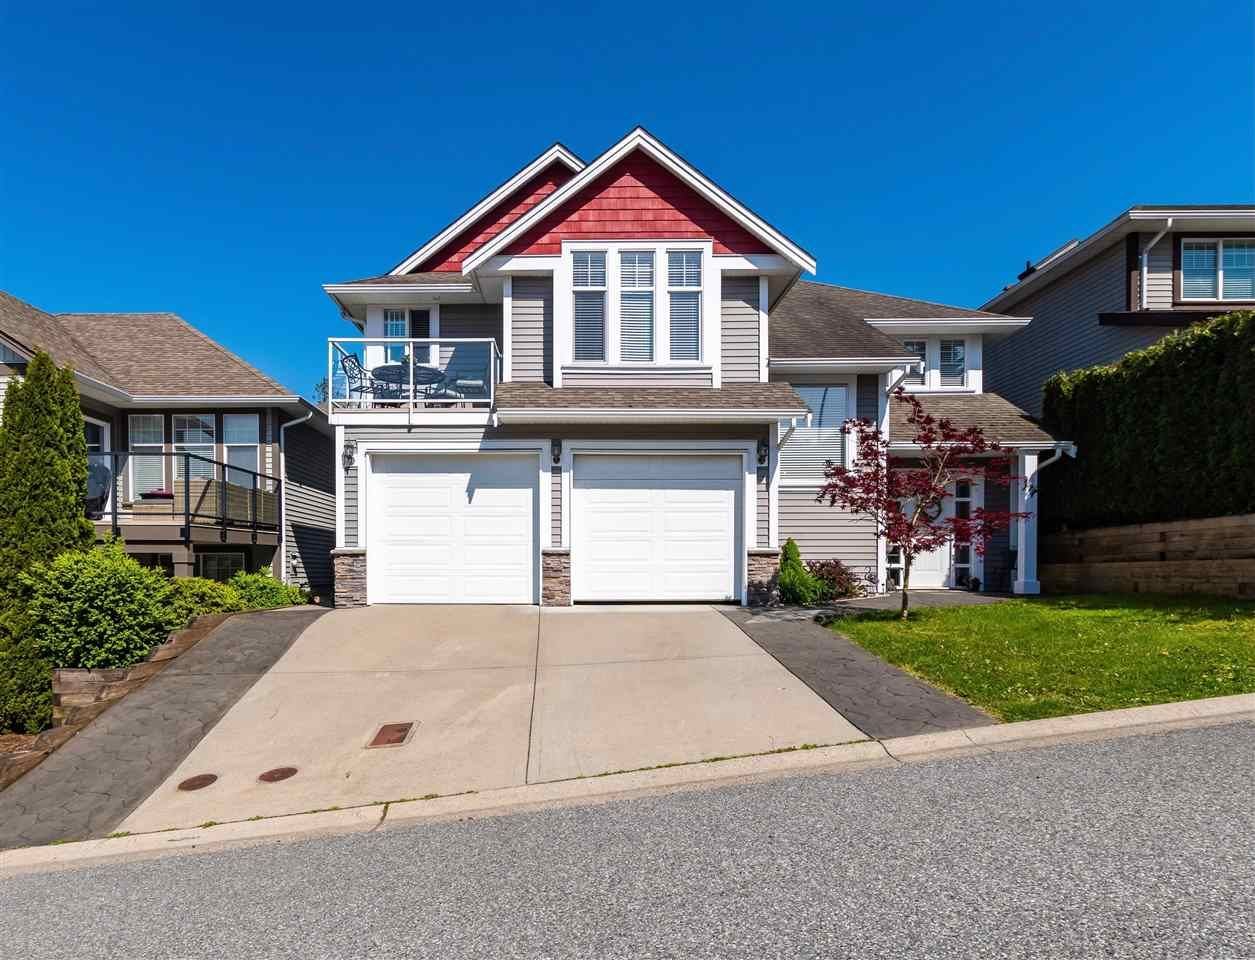 Main Photo: 46711 HUDSON Road in Chilliwack: Promontory House for sale (Sardis)  : MLS®# R2579704